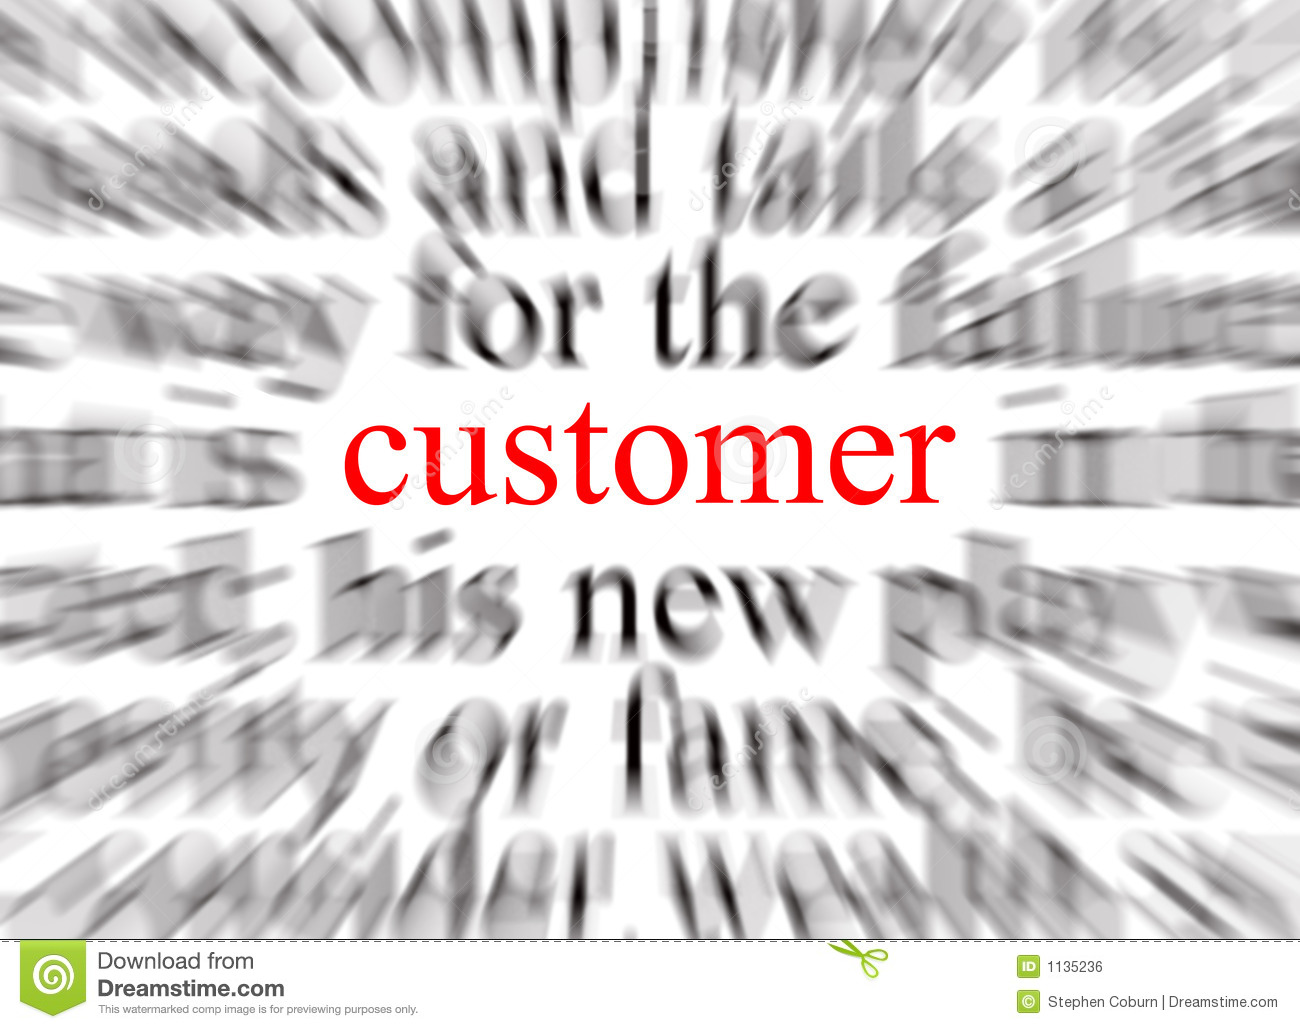 What is customer focus